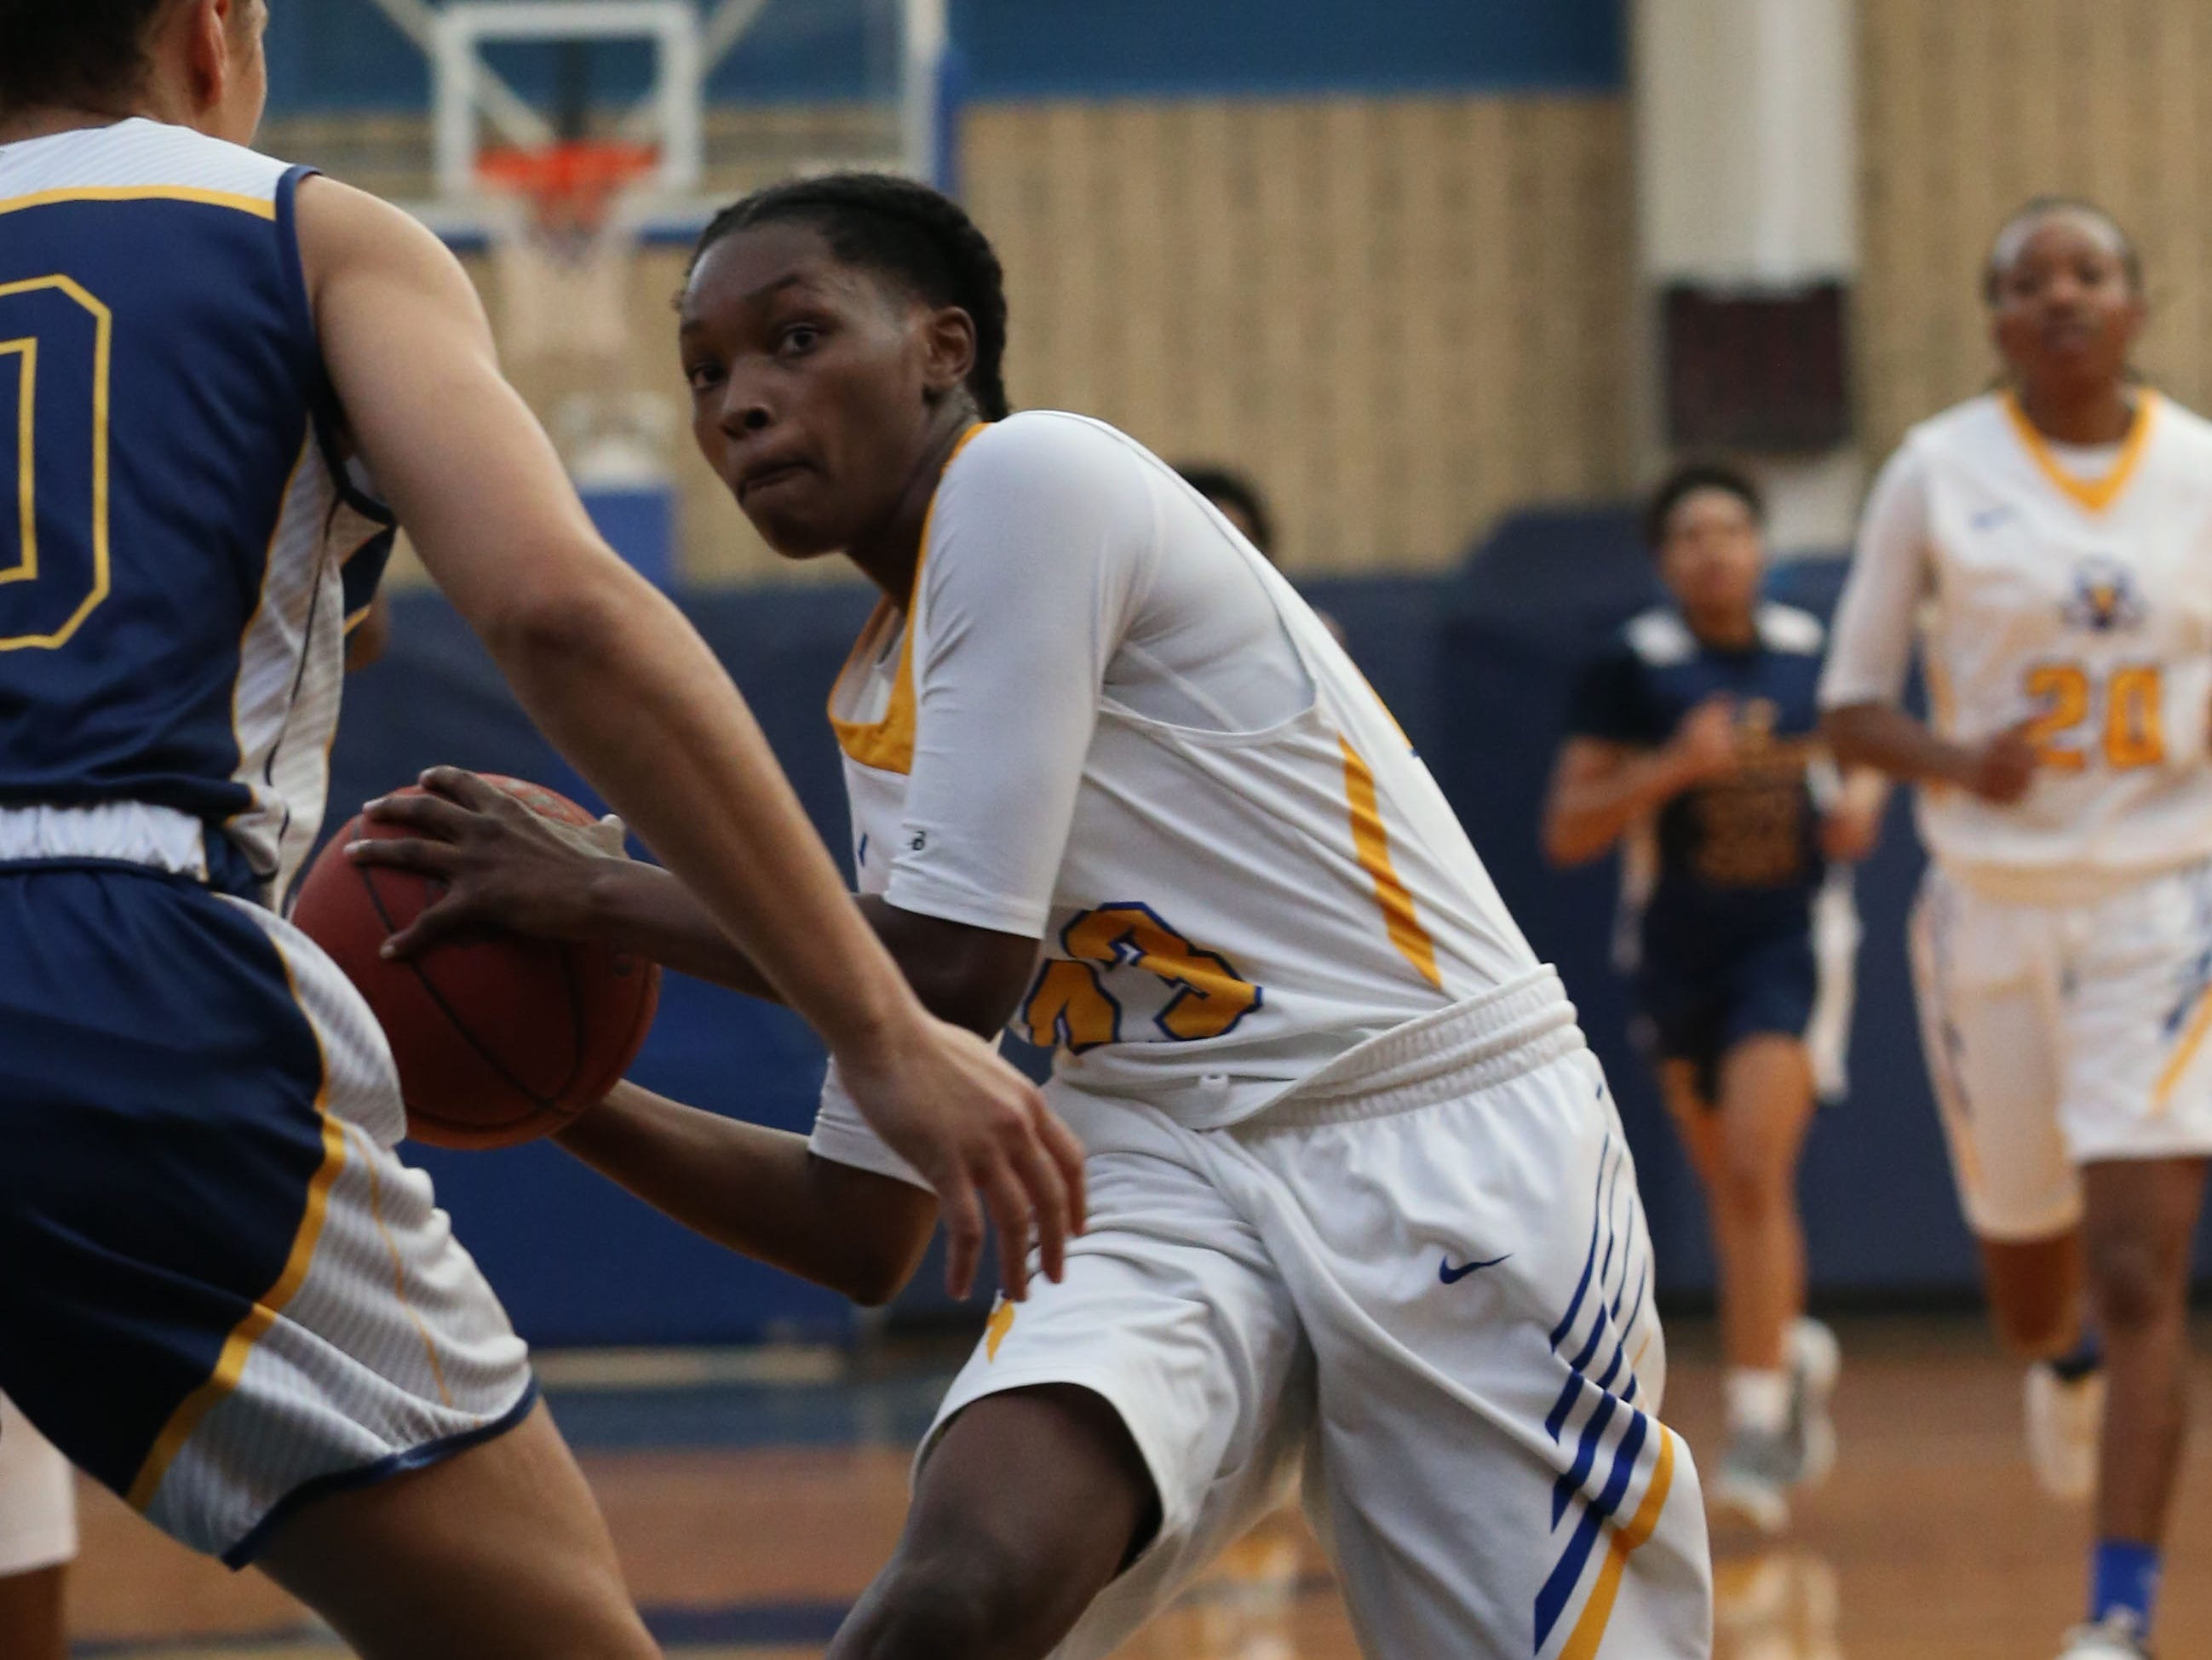 Tallahassee Community College Eagles guard Juliunn Redmond (23) looks to pass to a teammate. The Tallahassee Community College Eagles host the Gulf Coast State College Commodores in a conference match-up in the Eagledome, Saturday, Jan. 5, 2019.